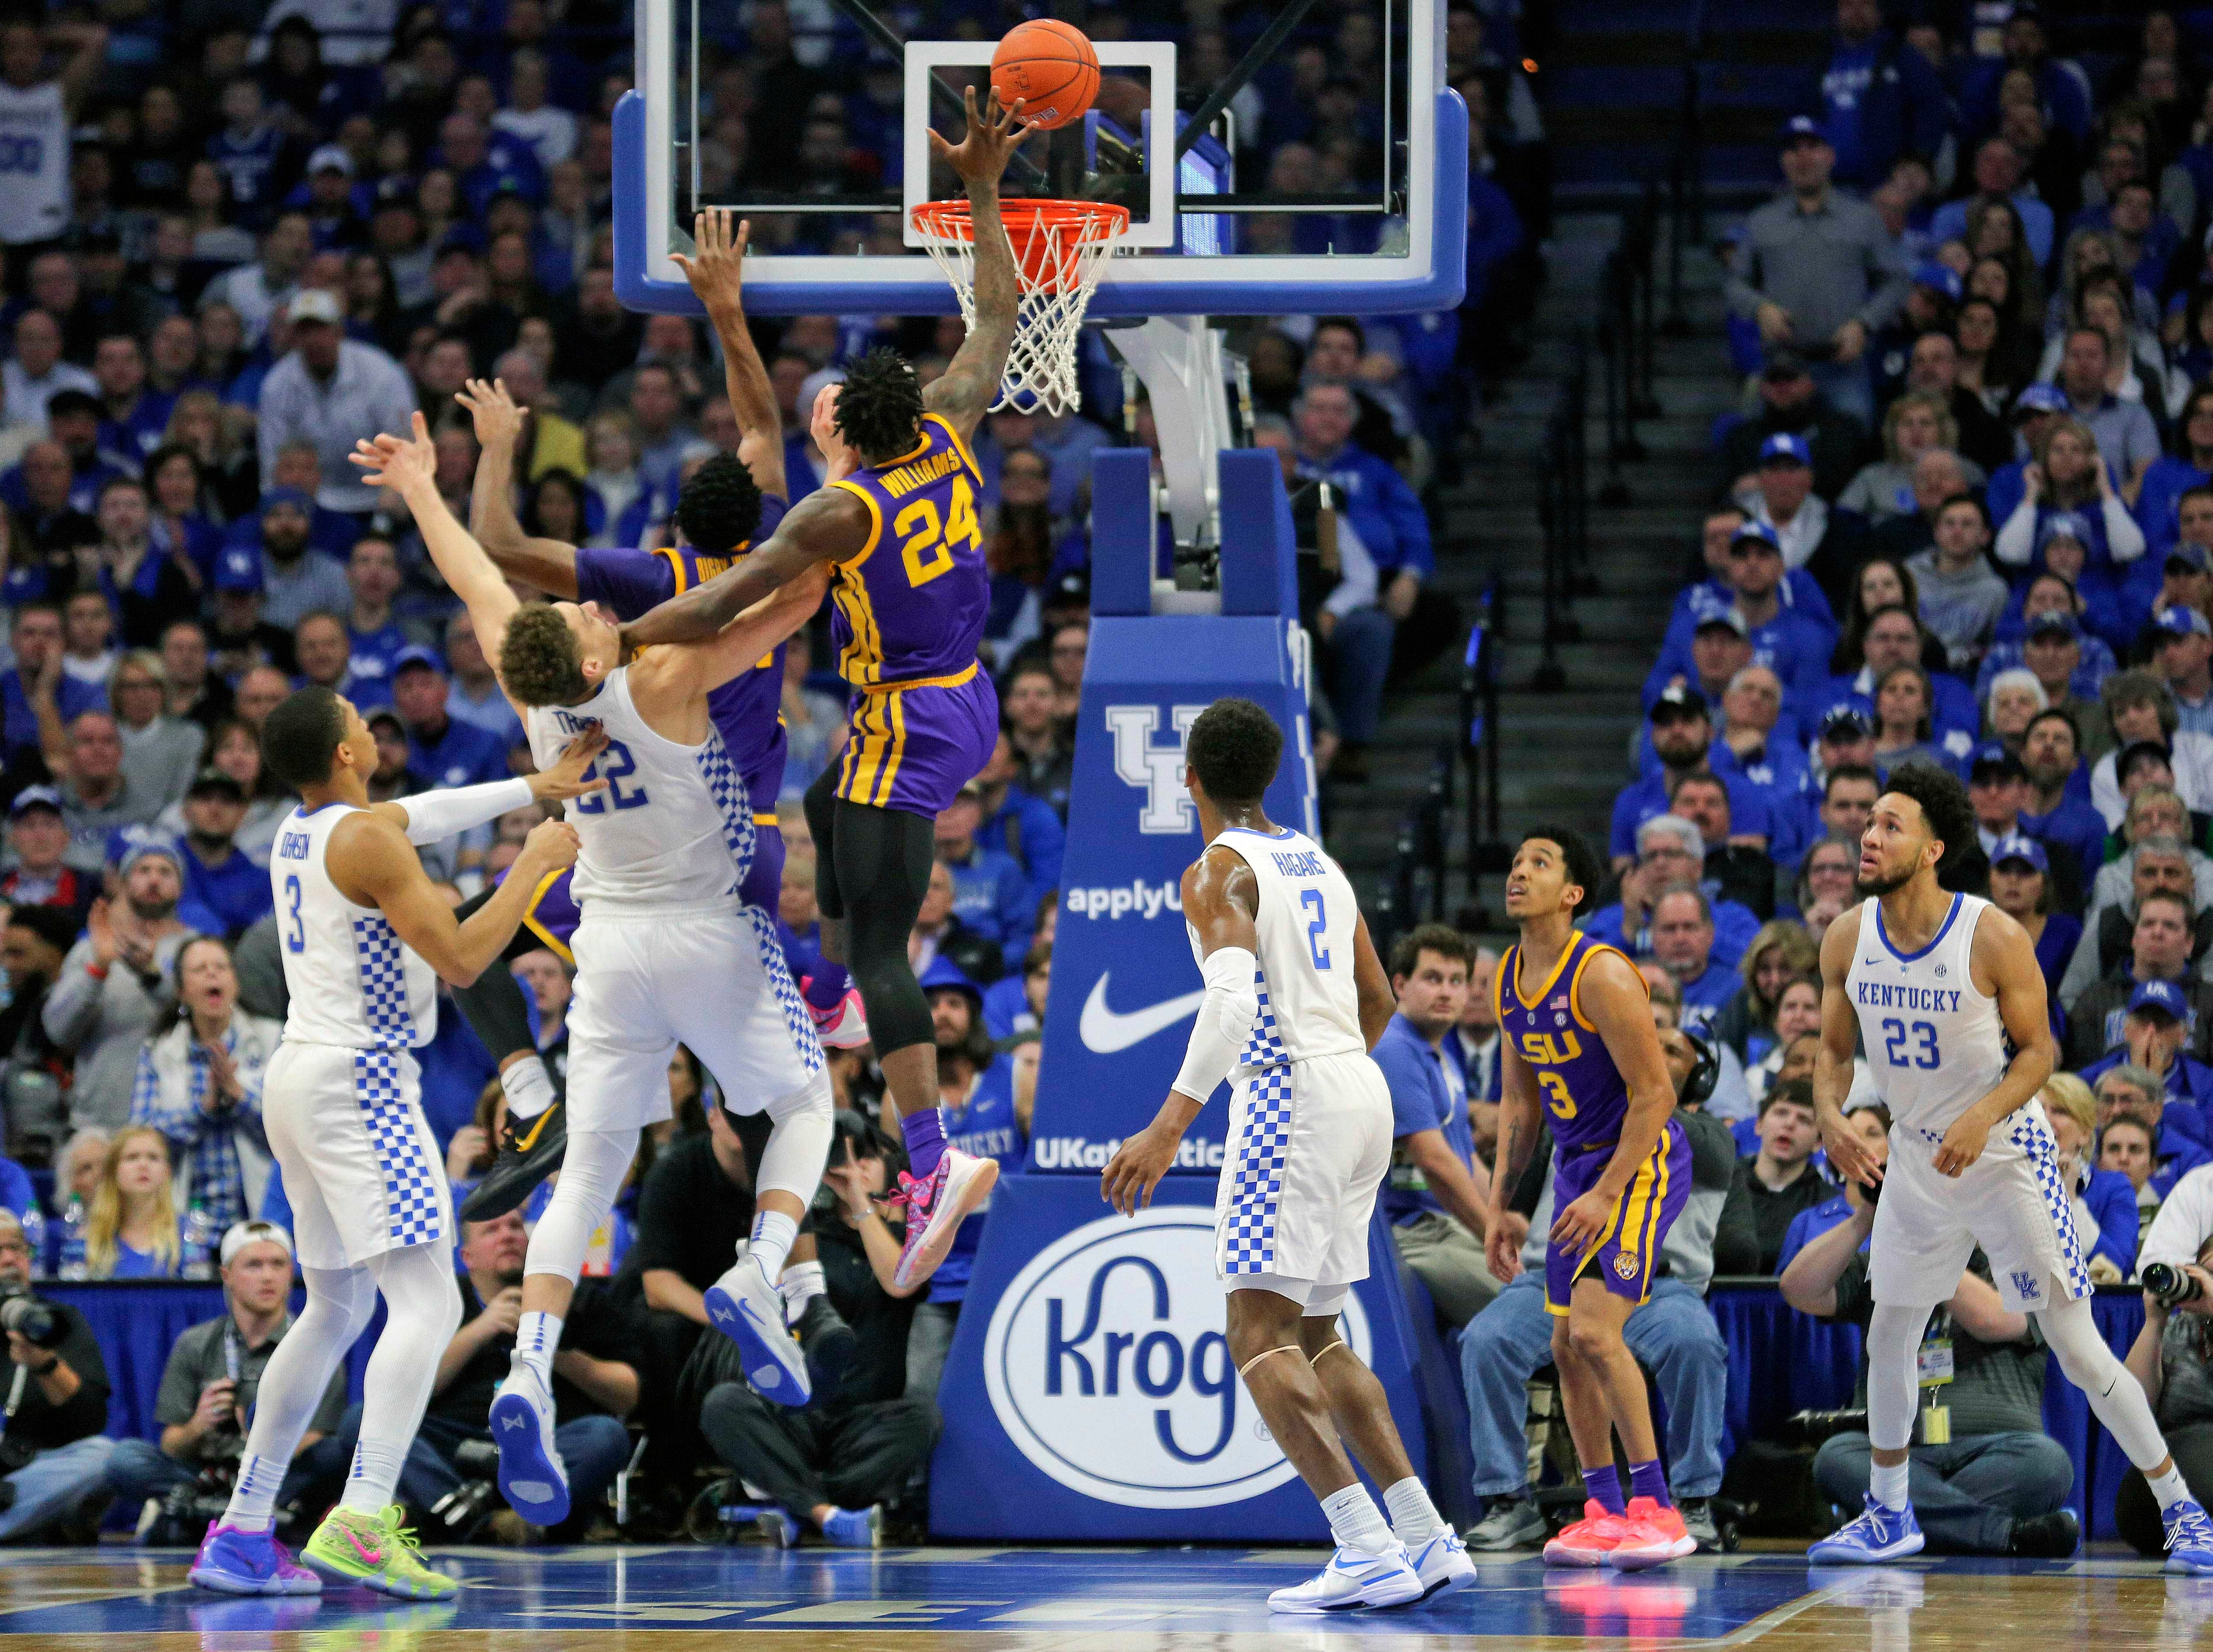 Feb 12, 2019; Lexington, KY, USA; LSU Tigers forward Emmitt Williams (24) shoots the ball against the Kentucky Wildcats in the second half at Rupp Arena. Mandatory Credit: Mark Zerof-USA TODAY Sports